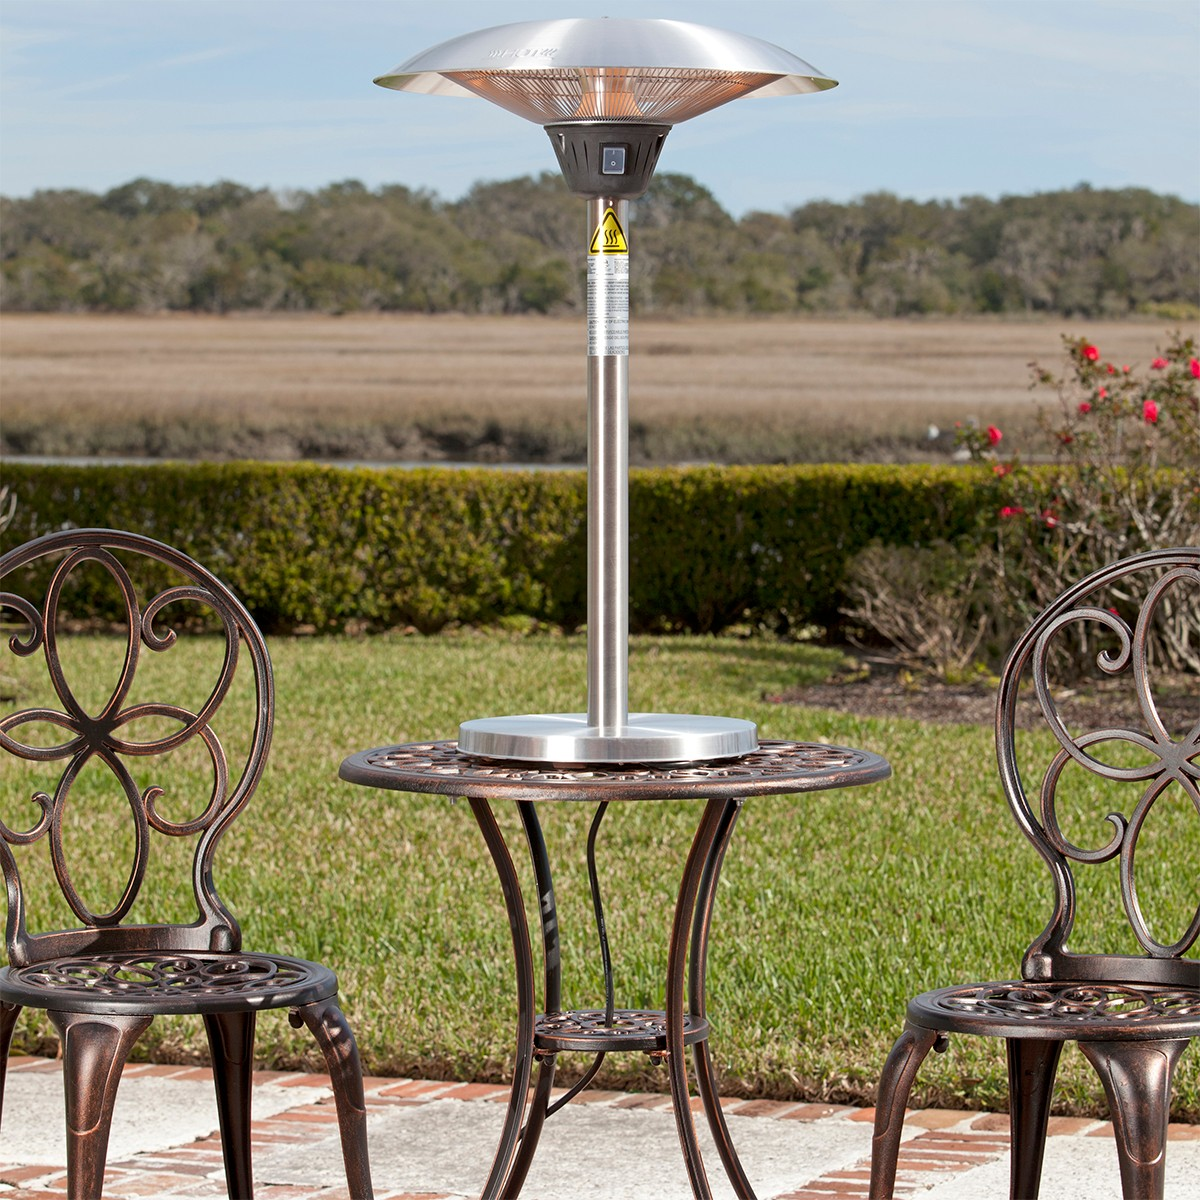 Fire Sense Cimmaron Tabletop Halogen Patio Heater